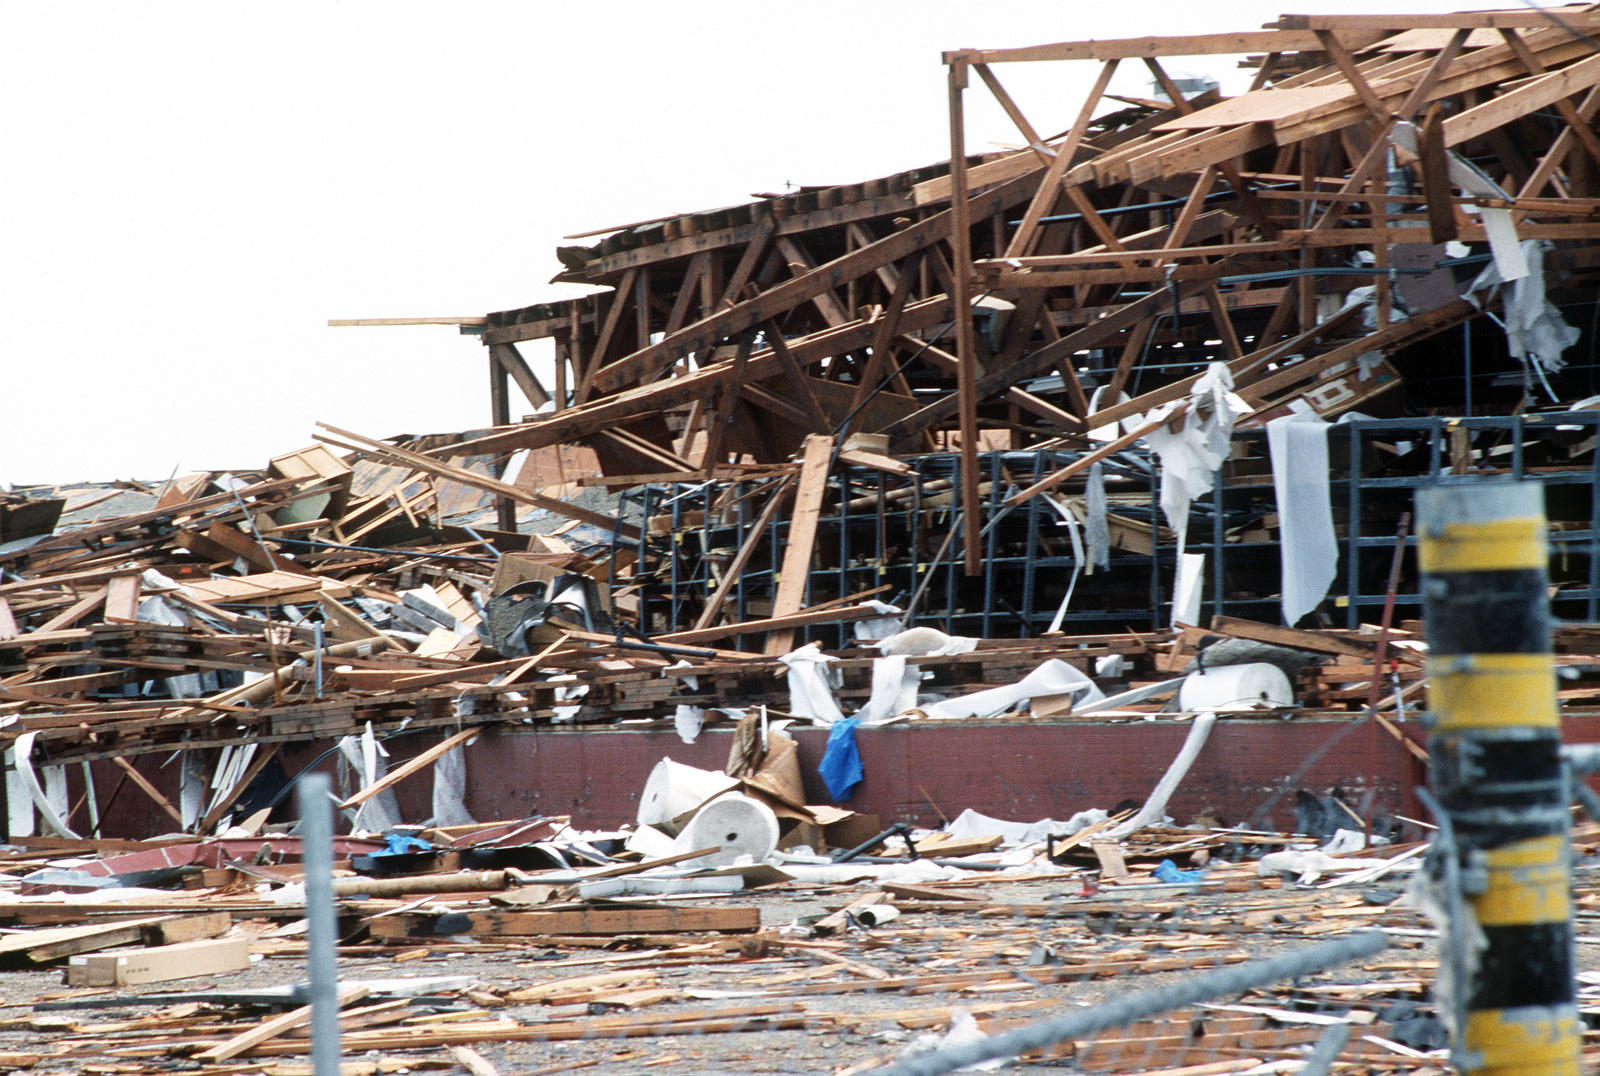 An overview of a warehouse destroyed by Hurricane Gilbert at the San Antonio Air Logistics Center